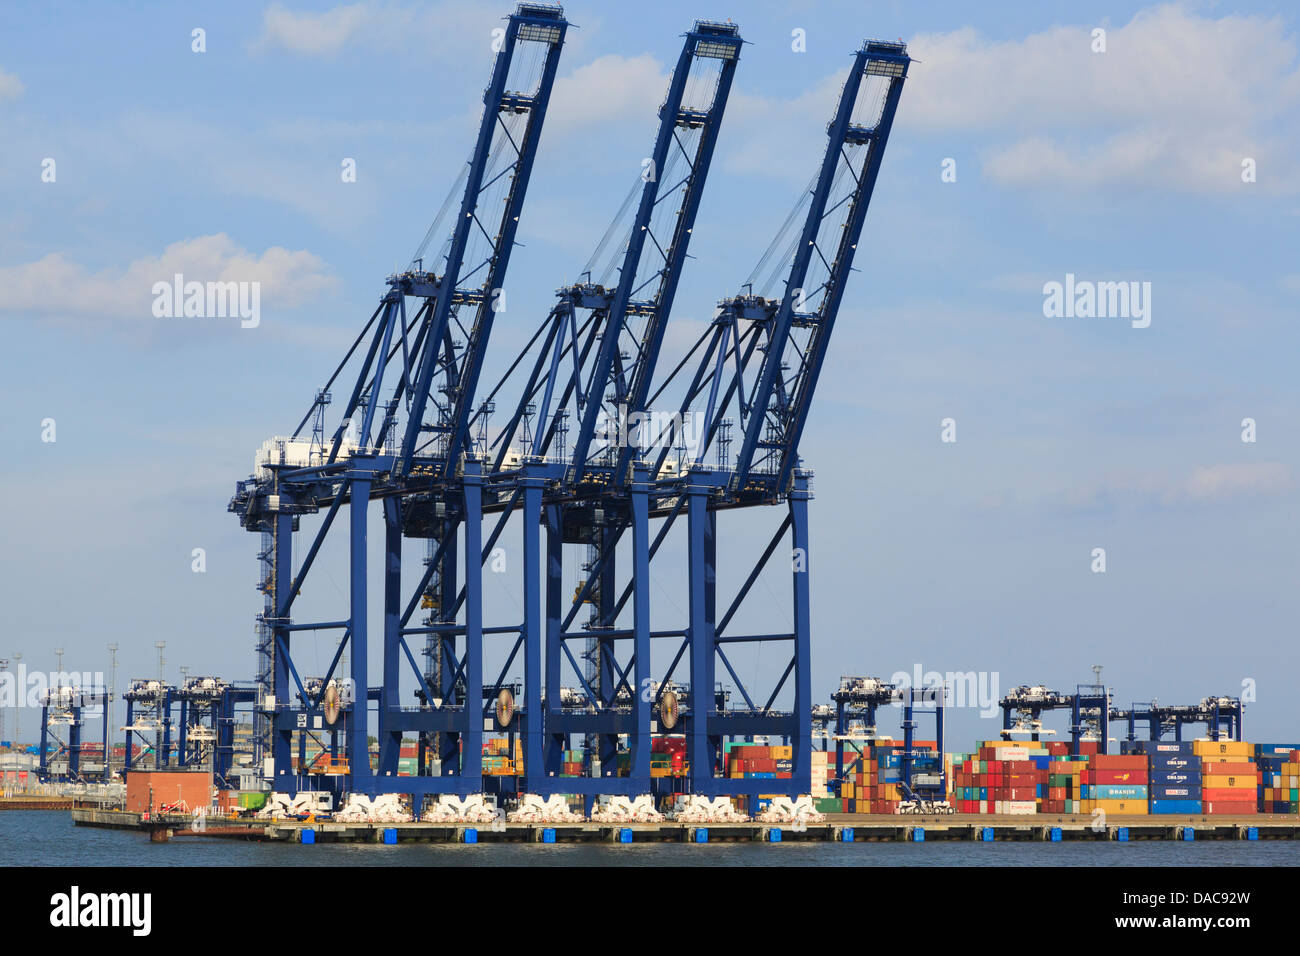 Gantry cranes for lifting containers on dockside terminal quay of largest British container port in UK. Felixstowe - Stock Image